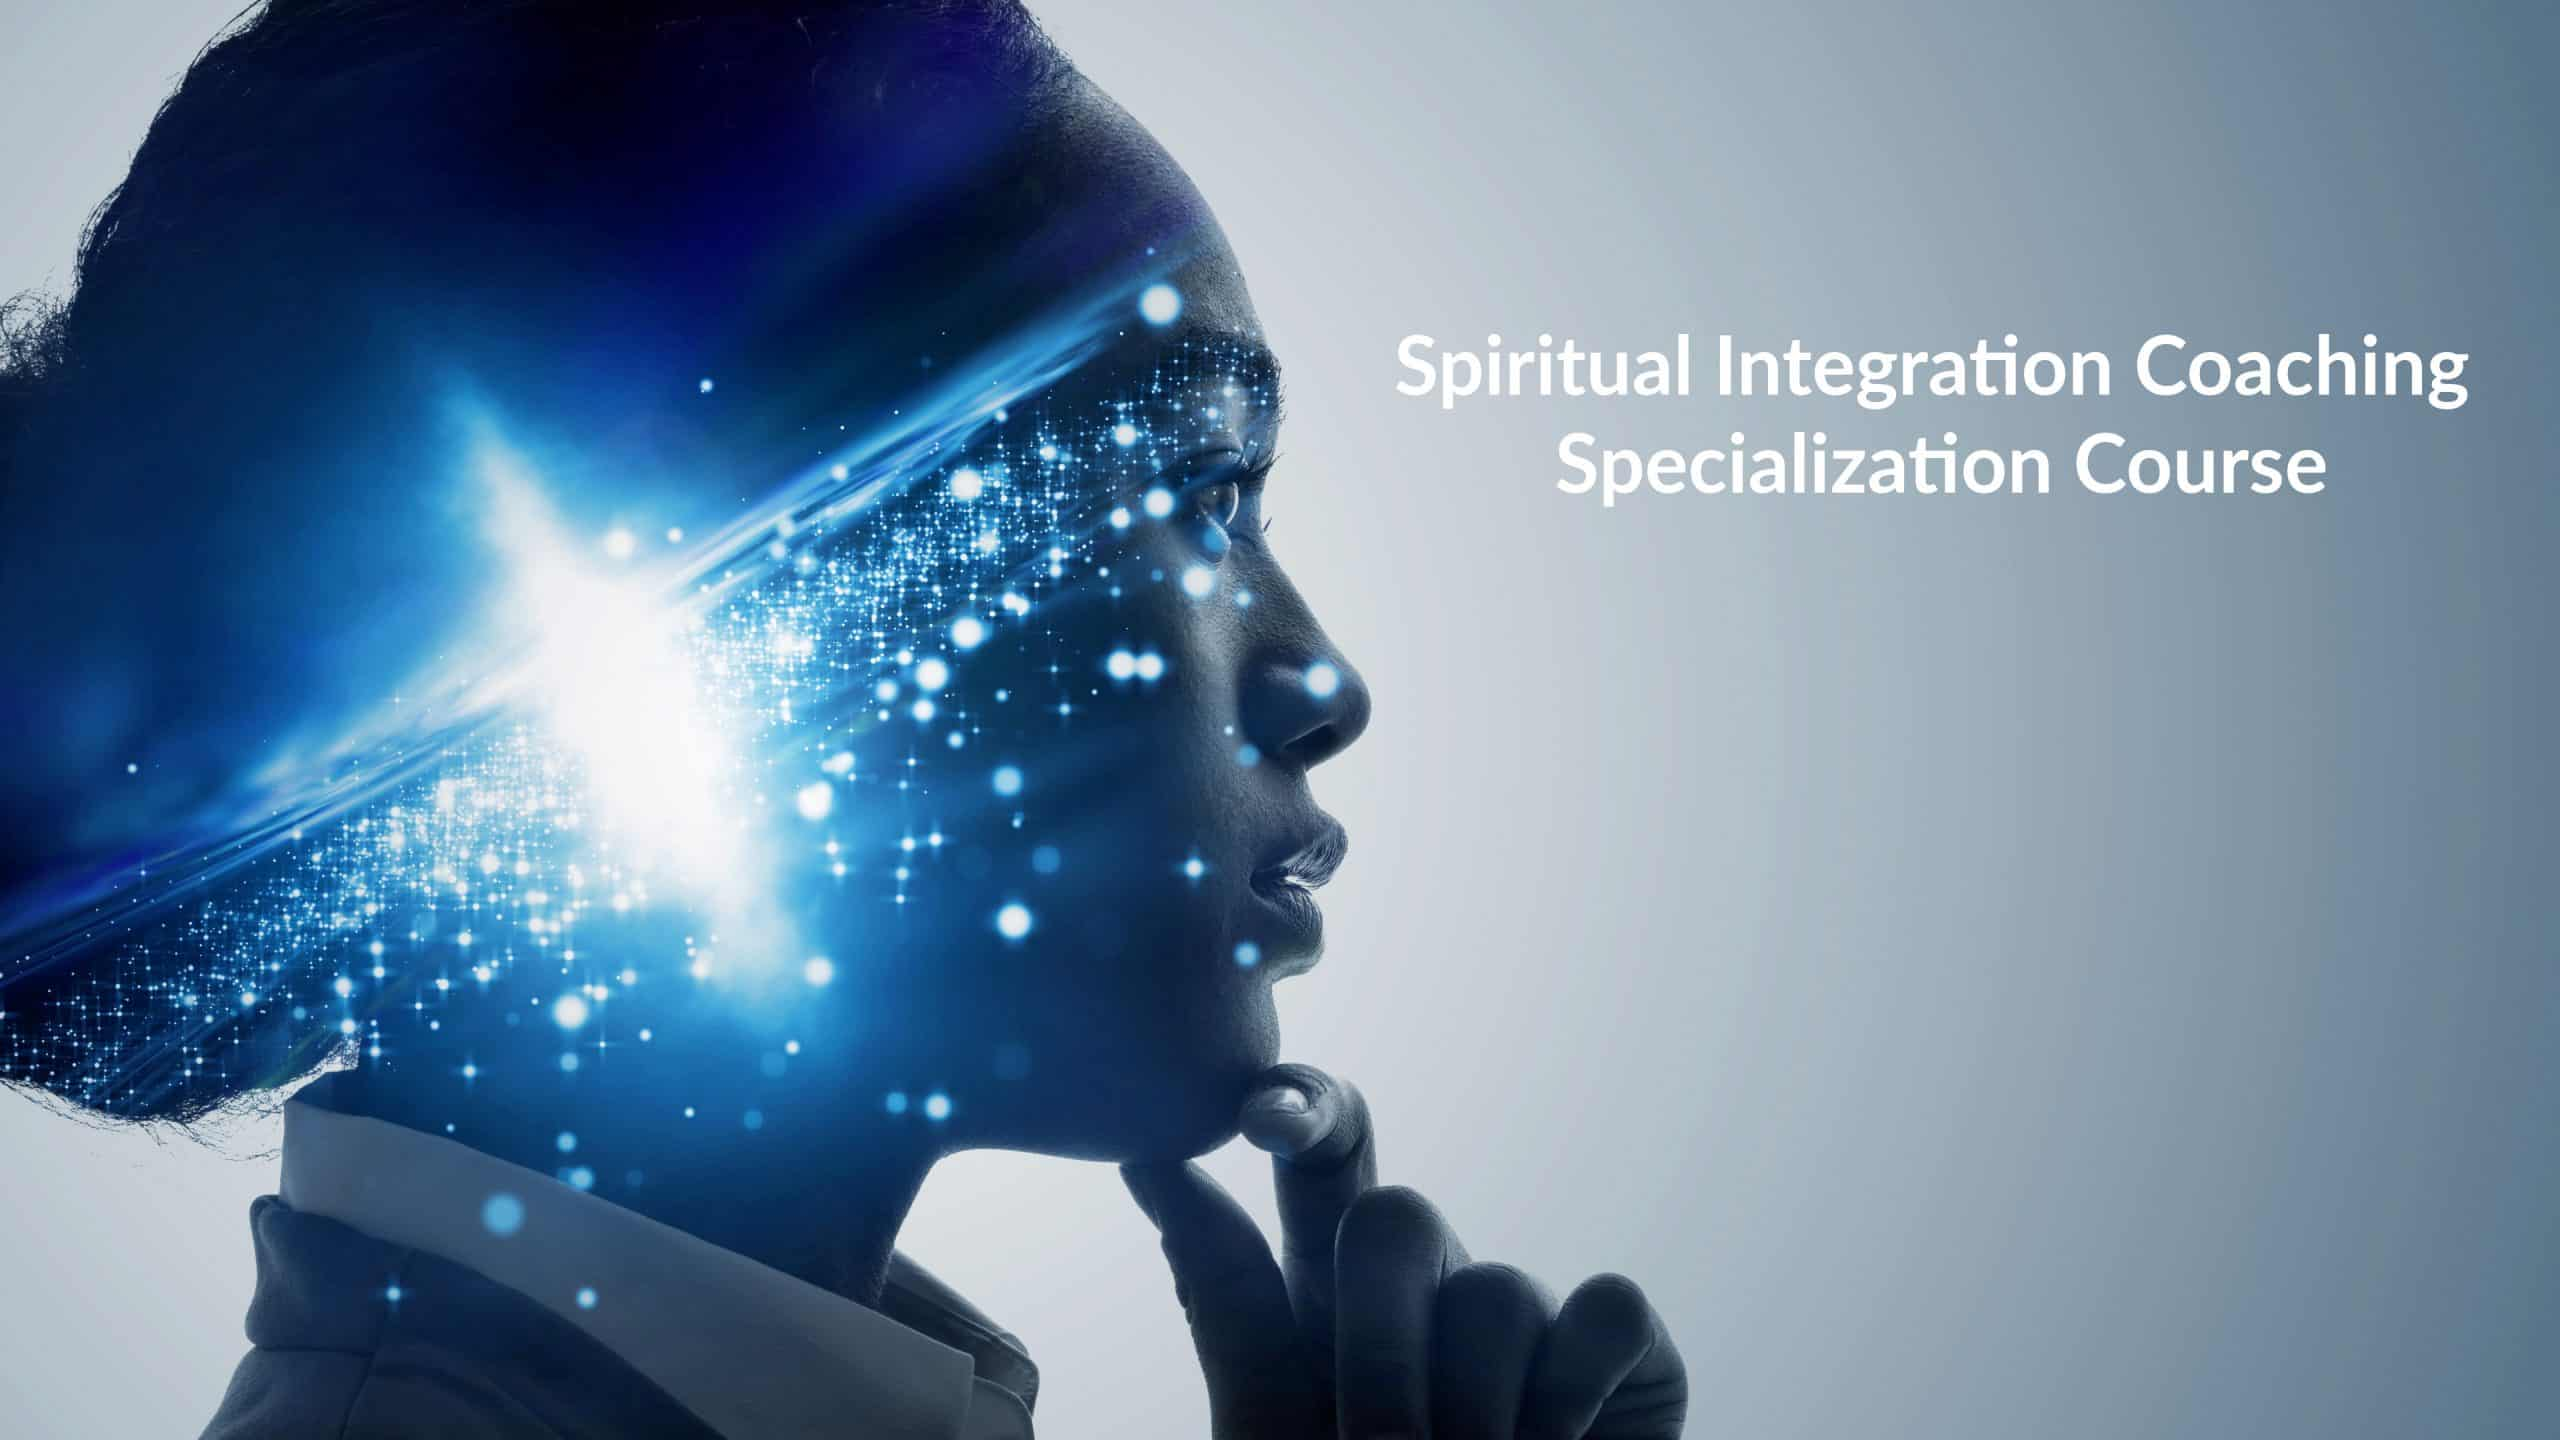 Spiritual Integration Coaching